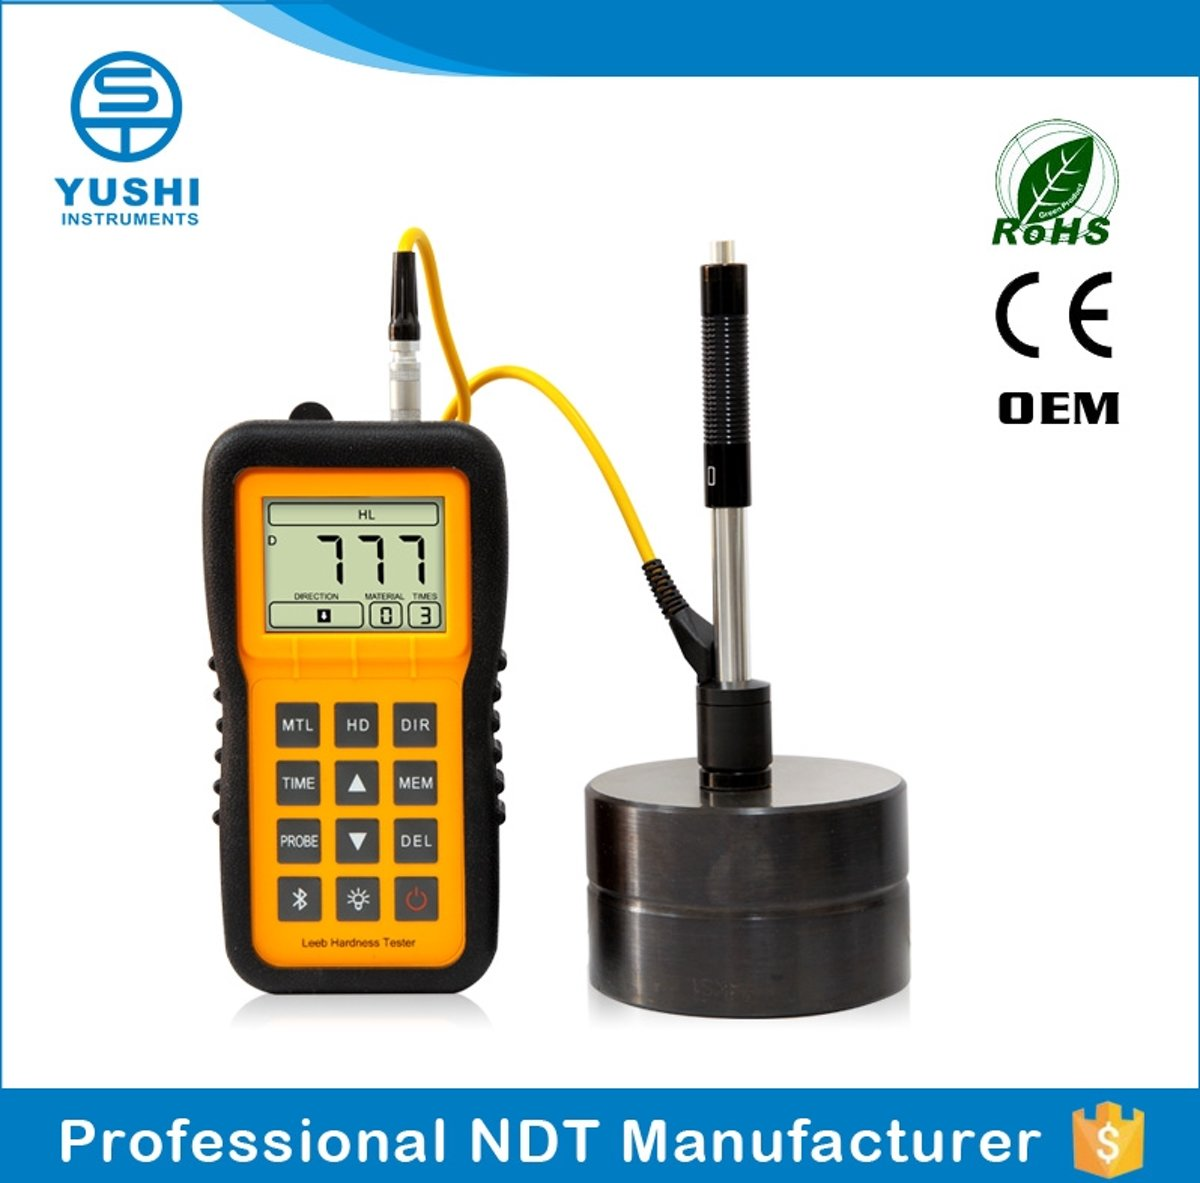 YUSHI LM100 top 10 portable hardness tester metal hardness tester leeb harness tester kopen